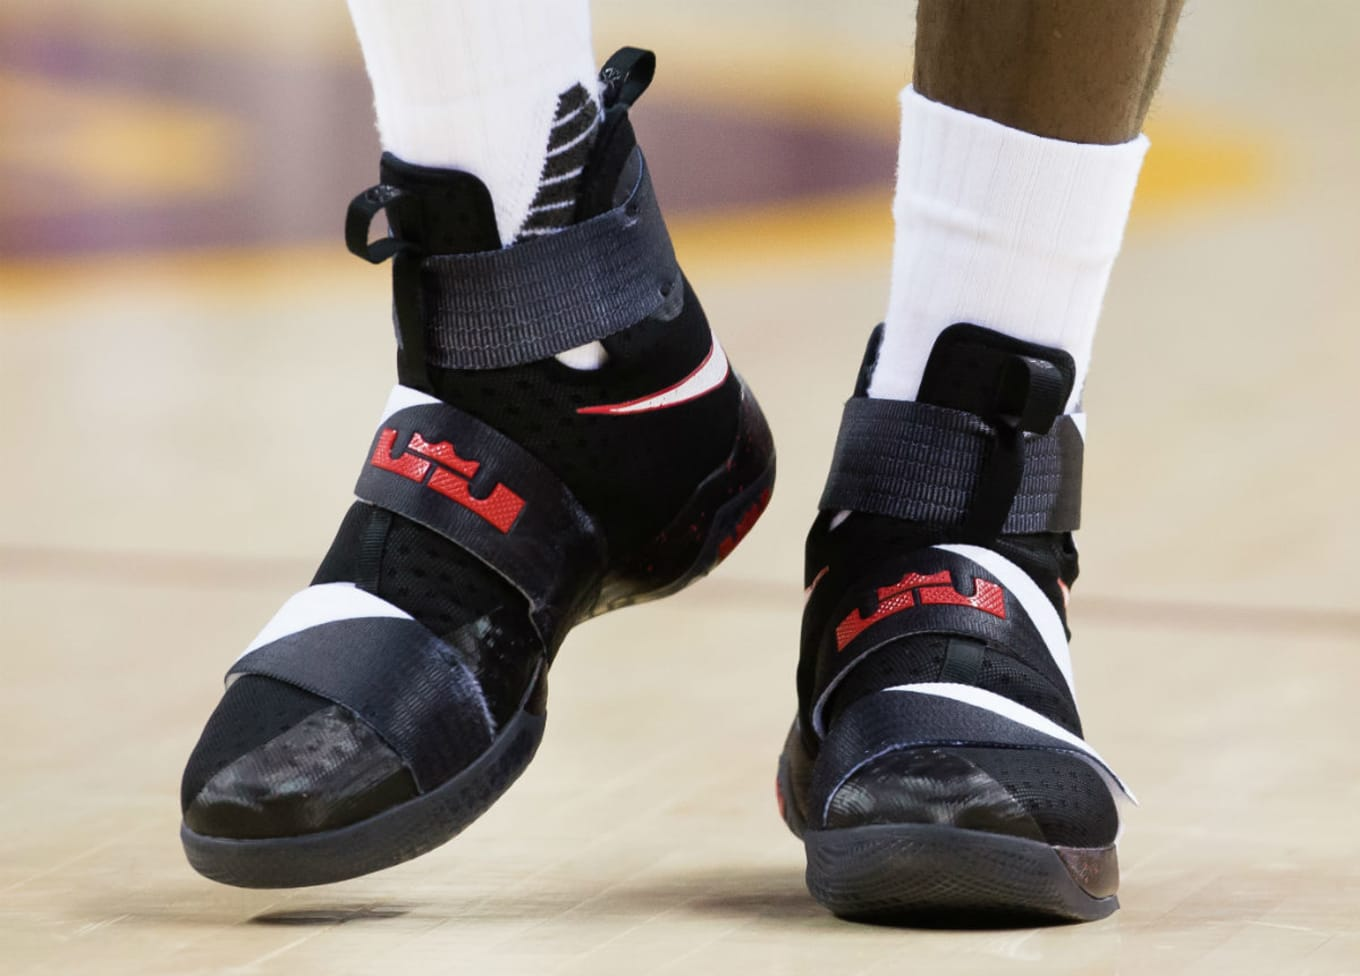 4b7532db6c2 LeBron James Nike LeBron Soldier 10 Black White-Red PE